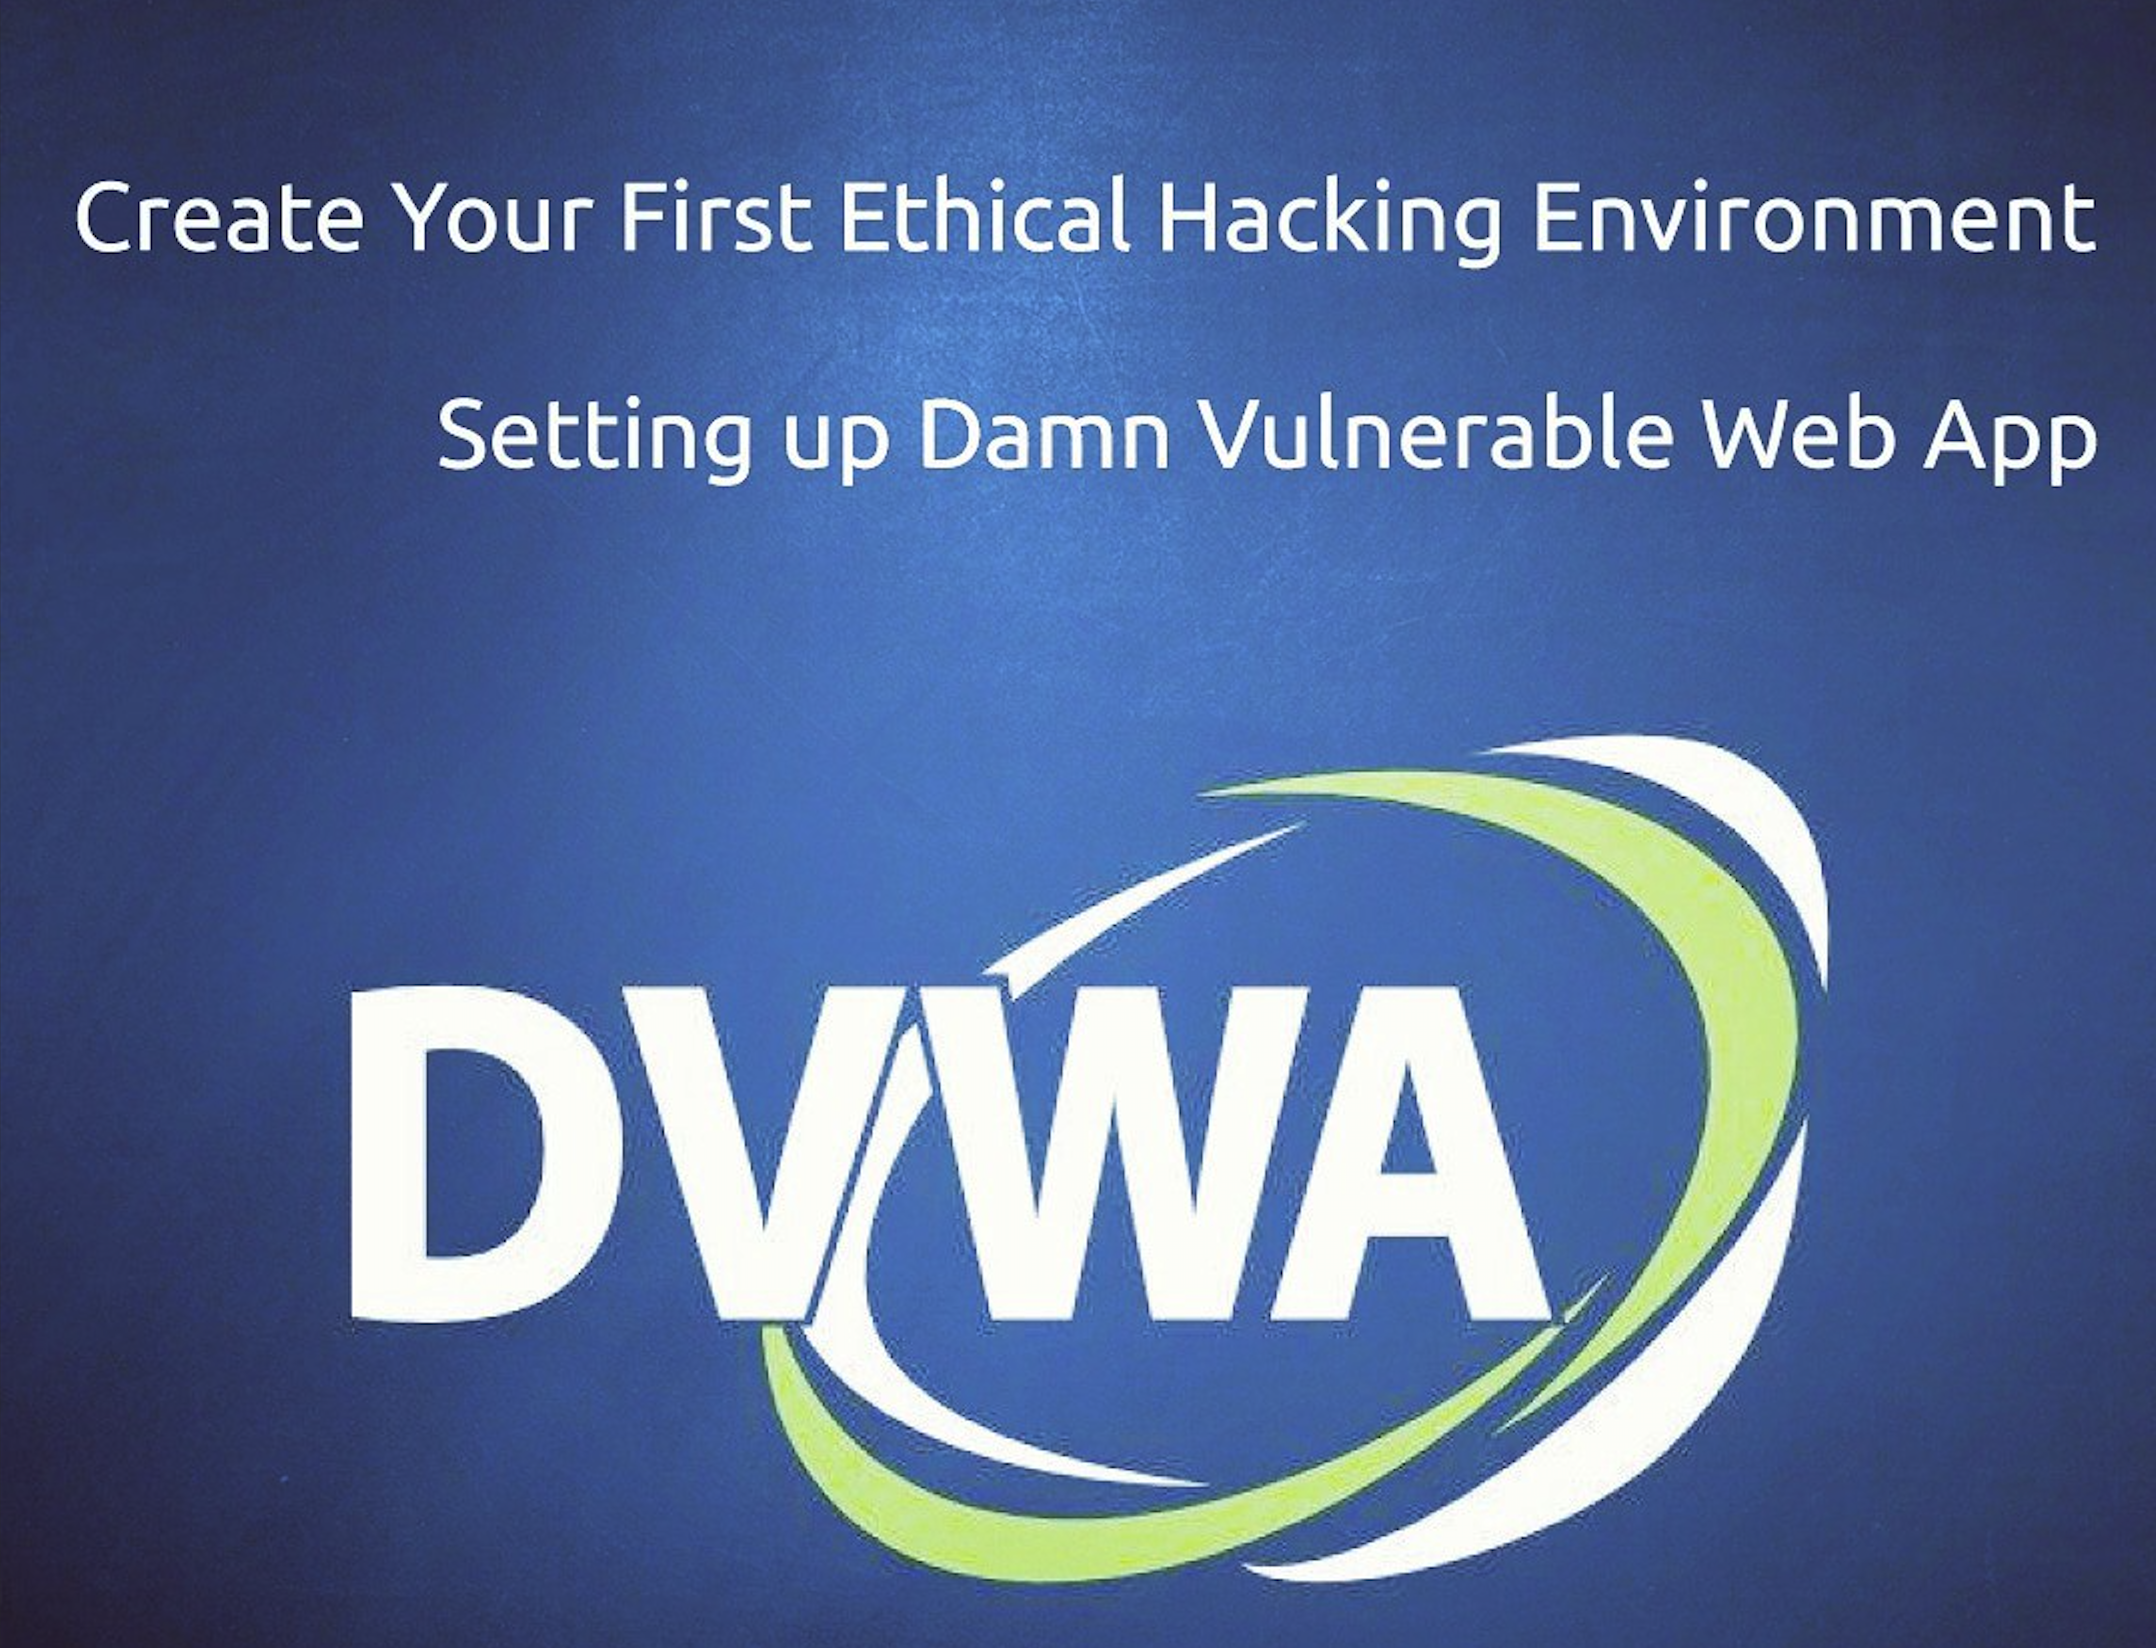 How to Install DVWA Into Your Linux Distribution - Data